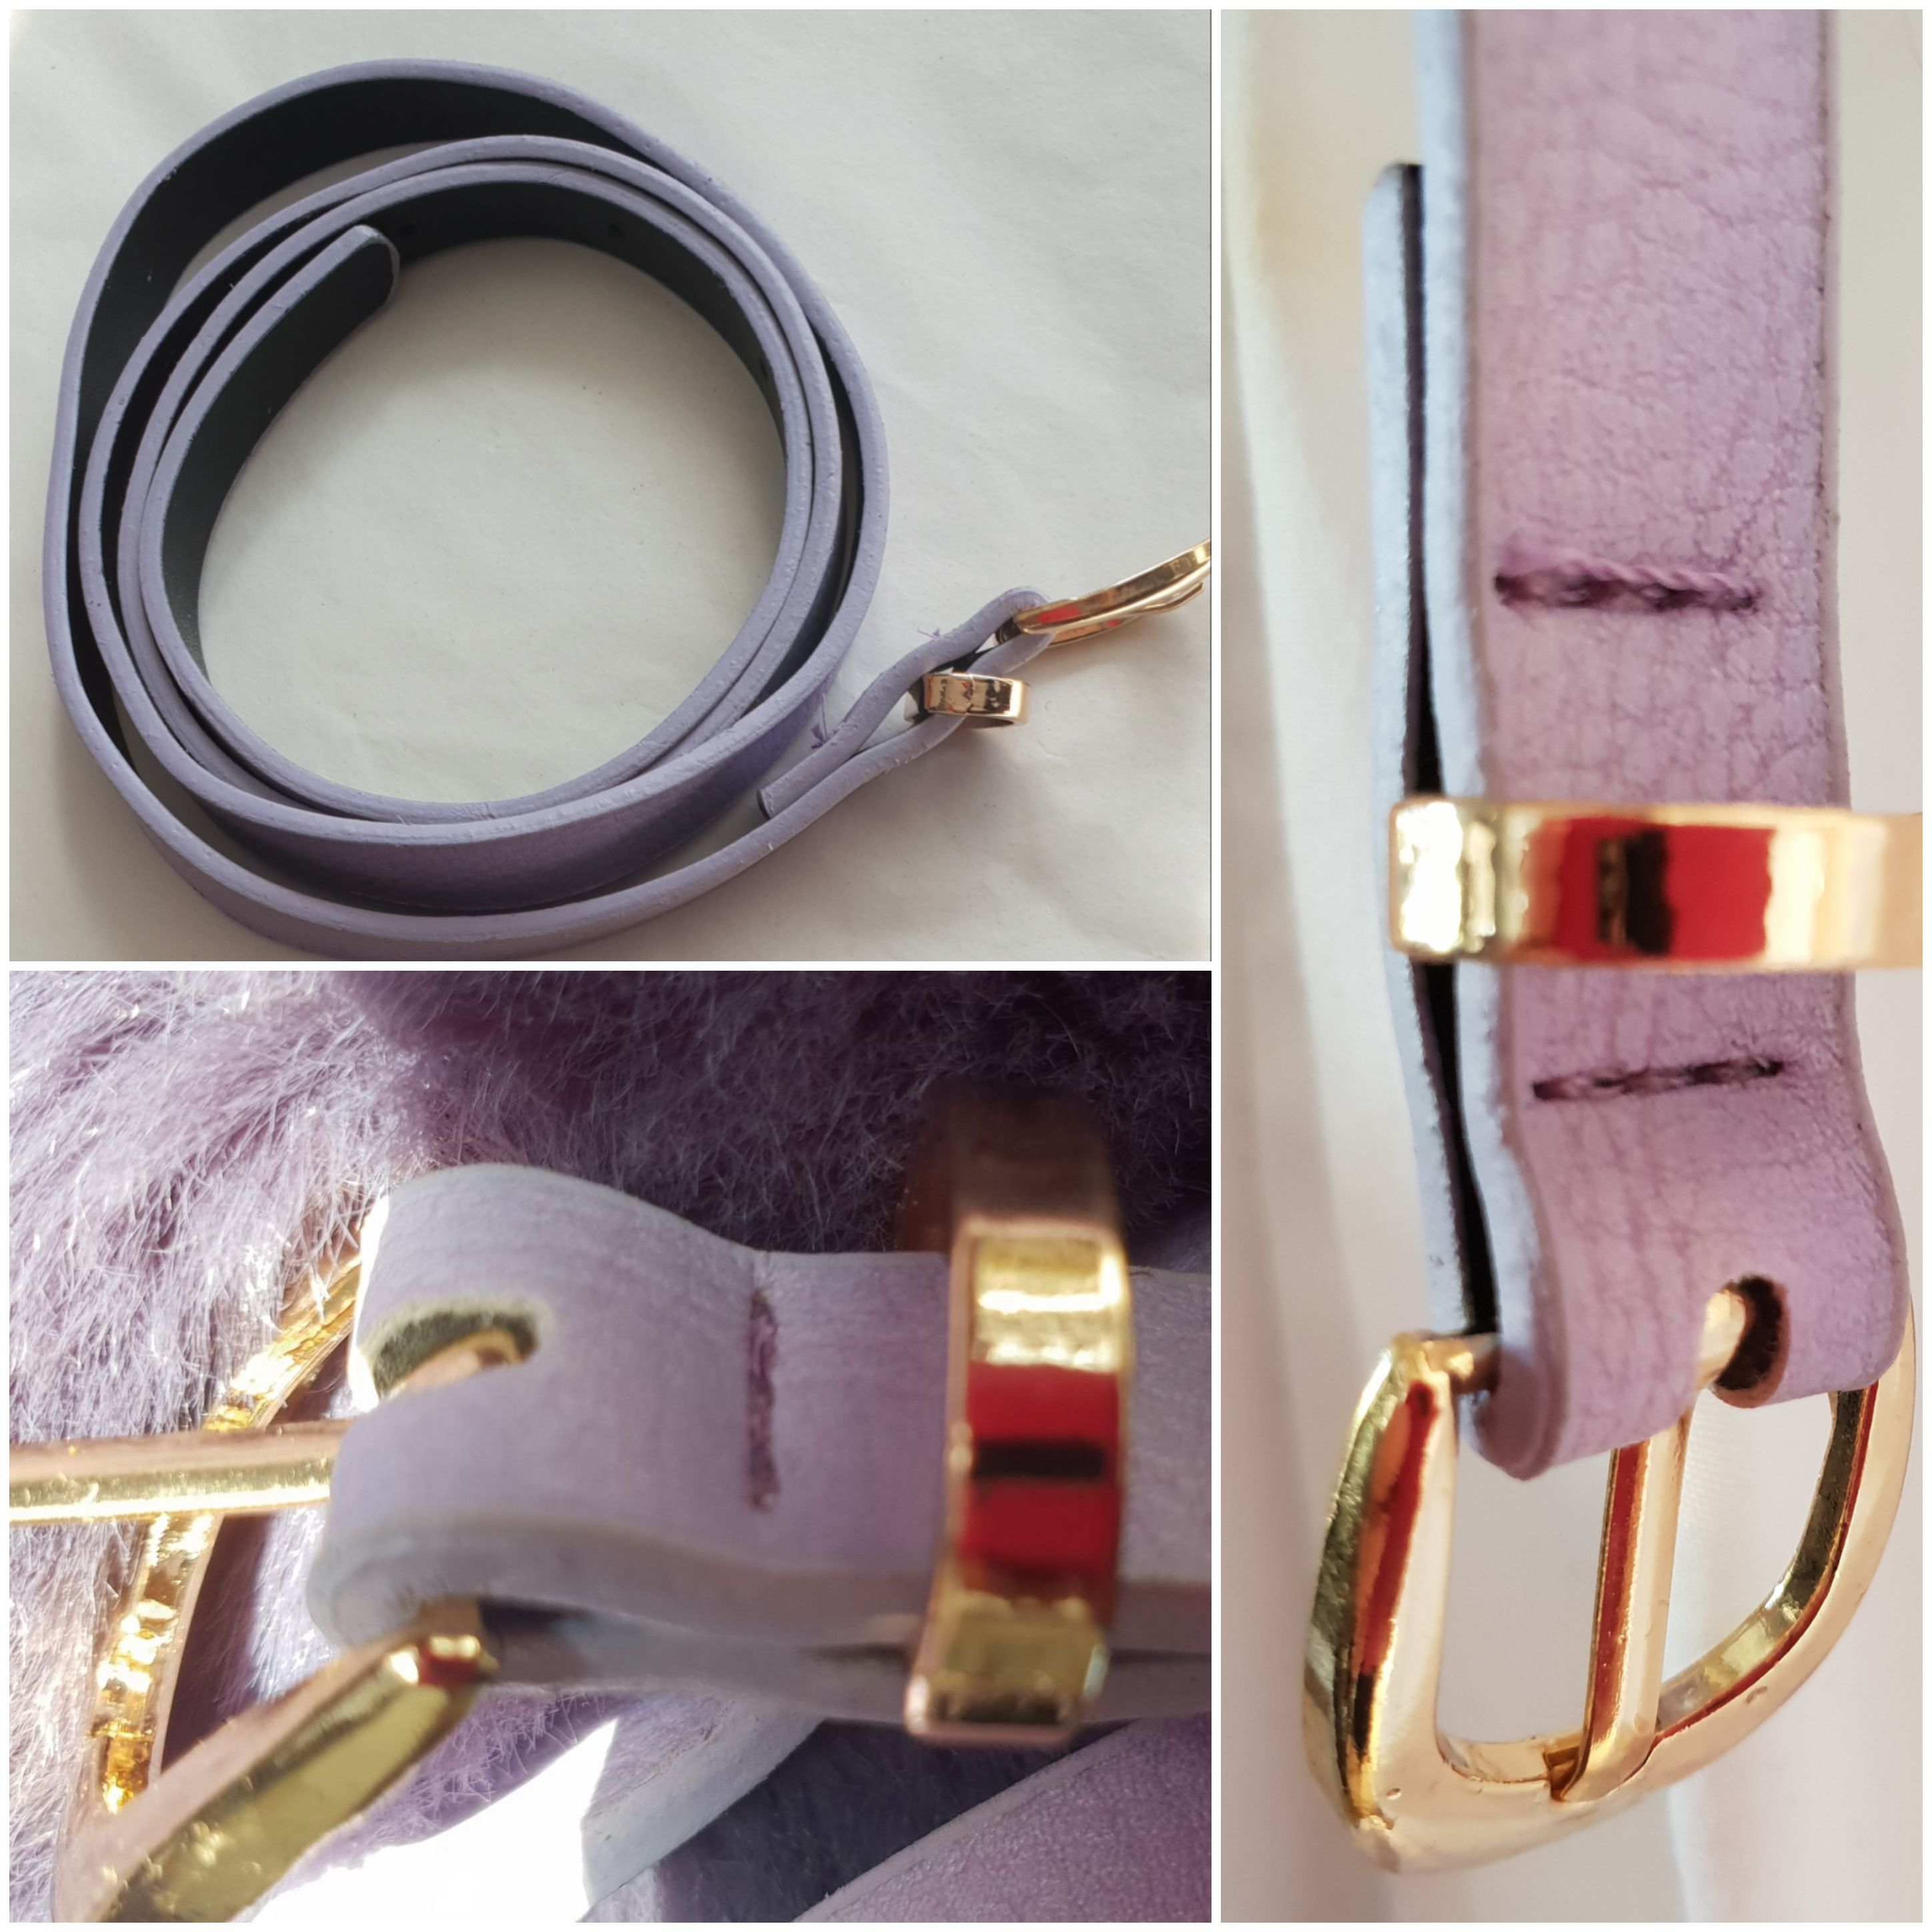 24 x Quality Lilac Faux Leather Belts 24